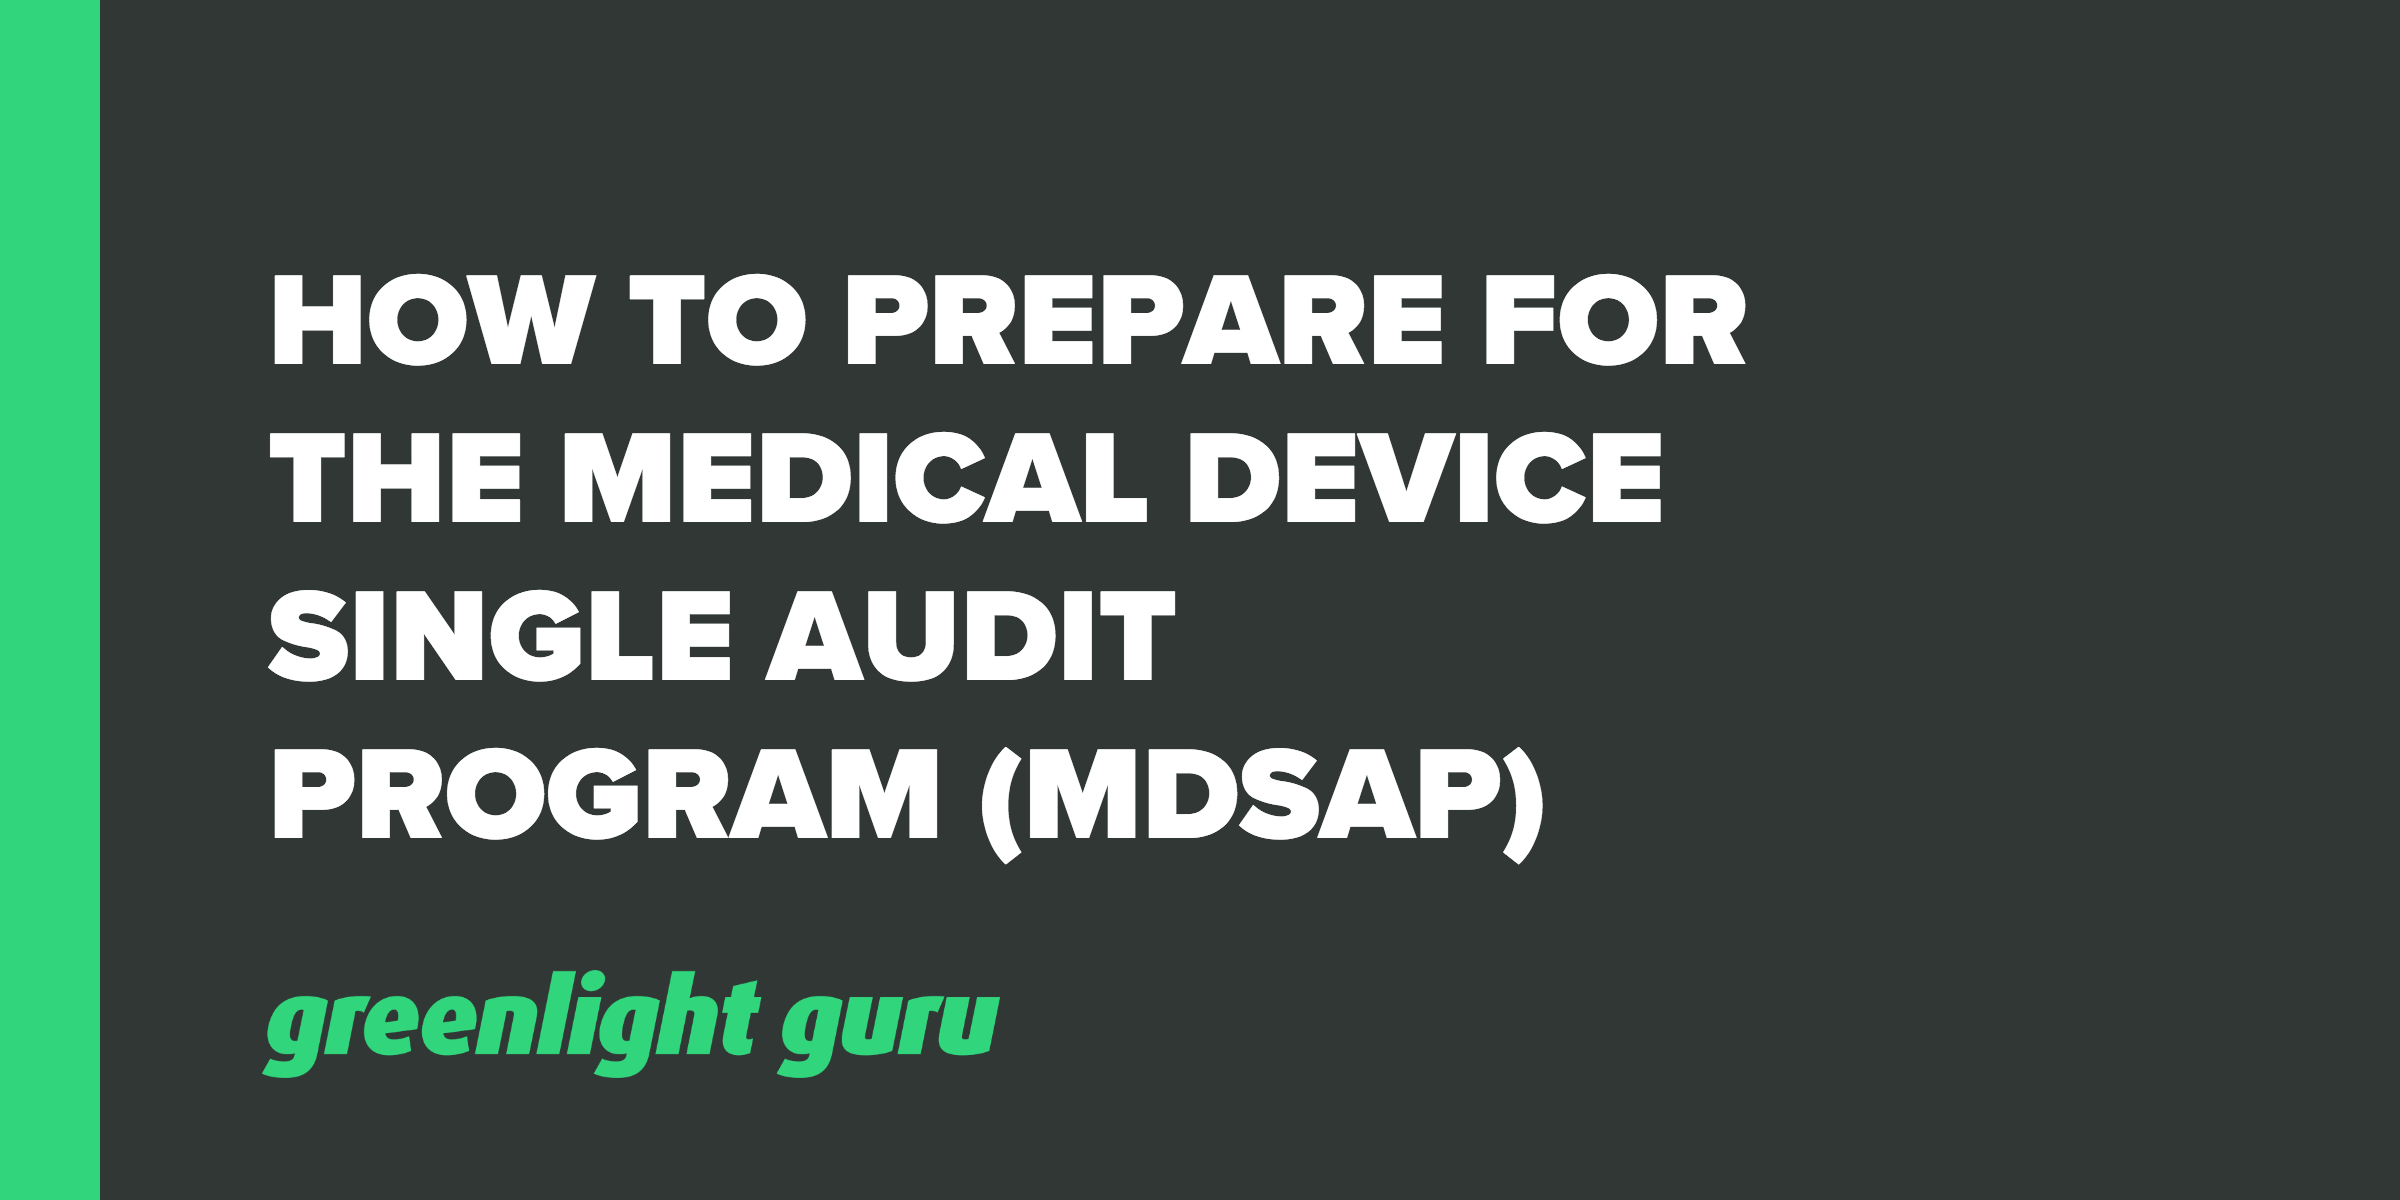 how_to_prepare_mdsap